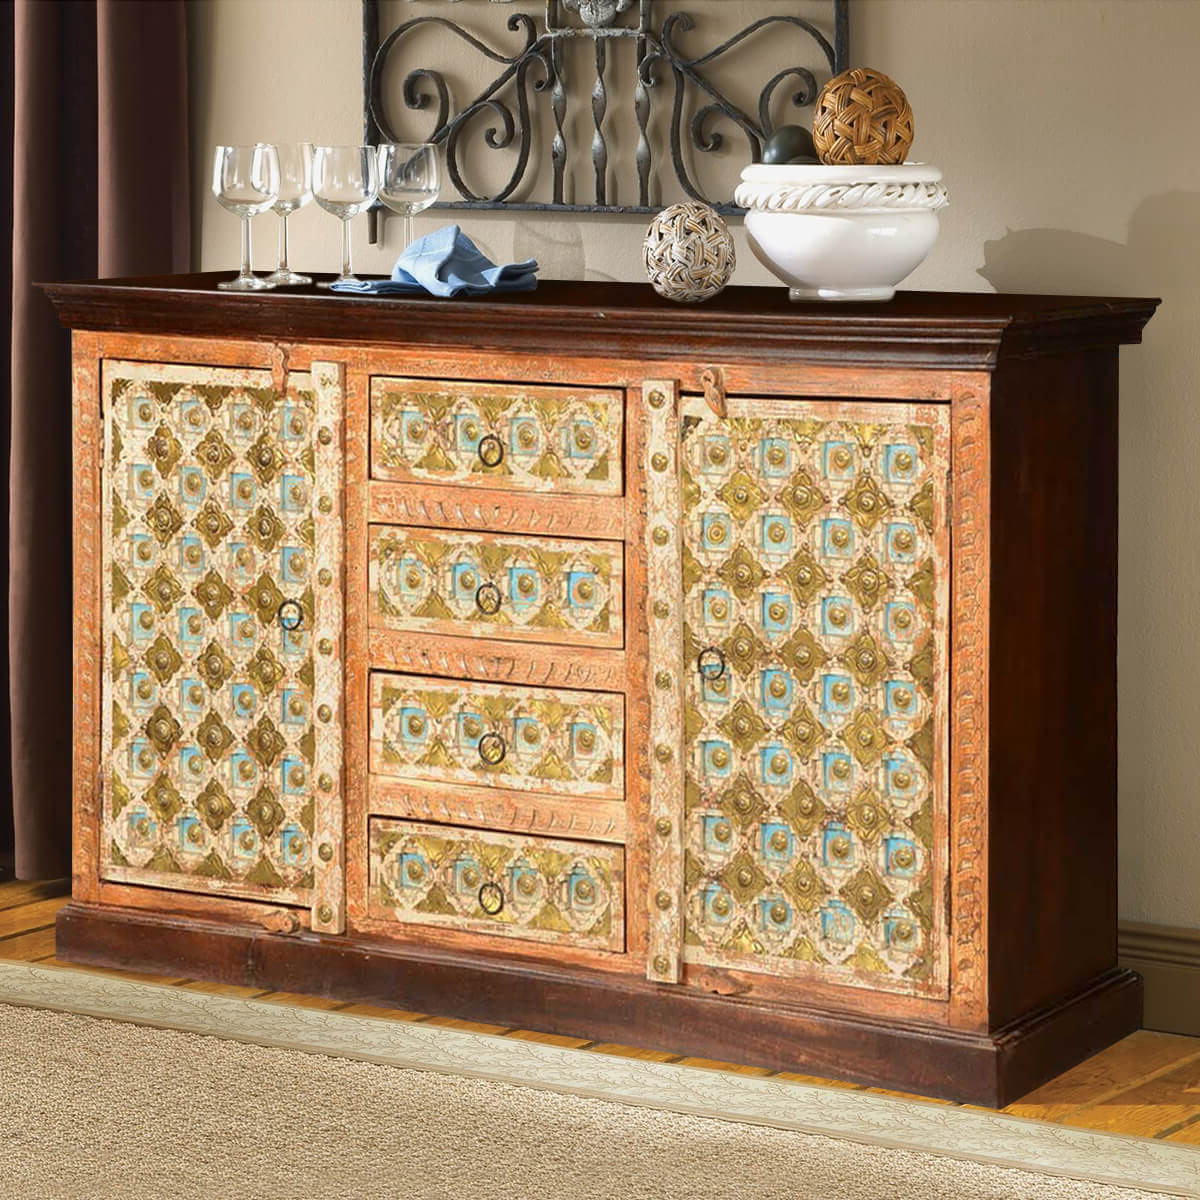 Turkish Handcrafted Brass Inlay Mango Wood 4 Drawer Large Sideboard Inside Colborne Sideboards (View 20 of 20)